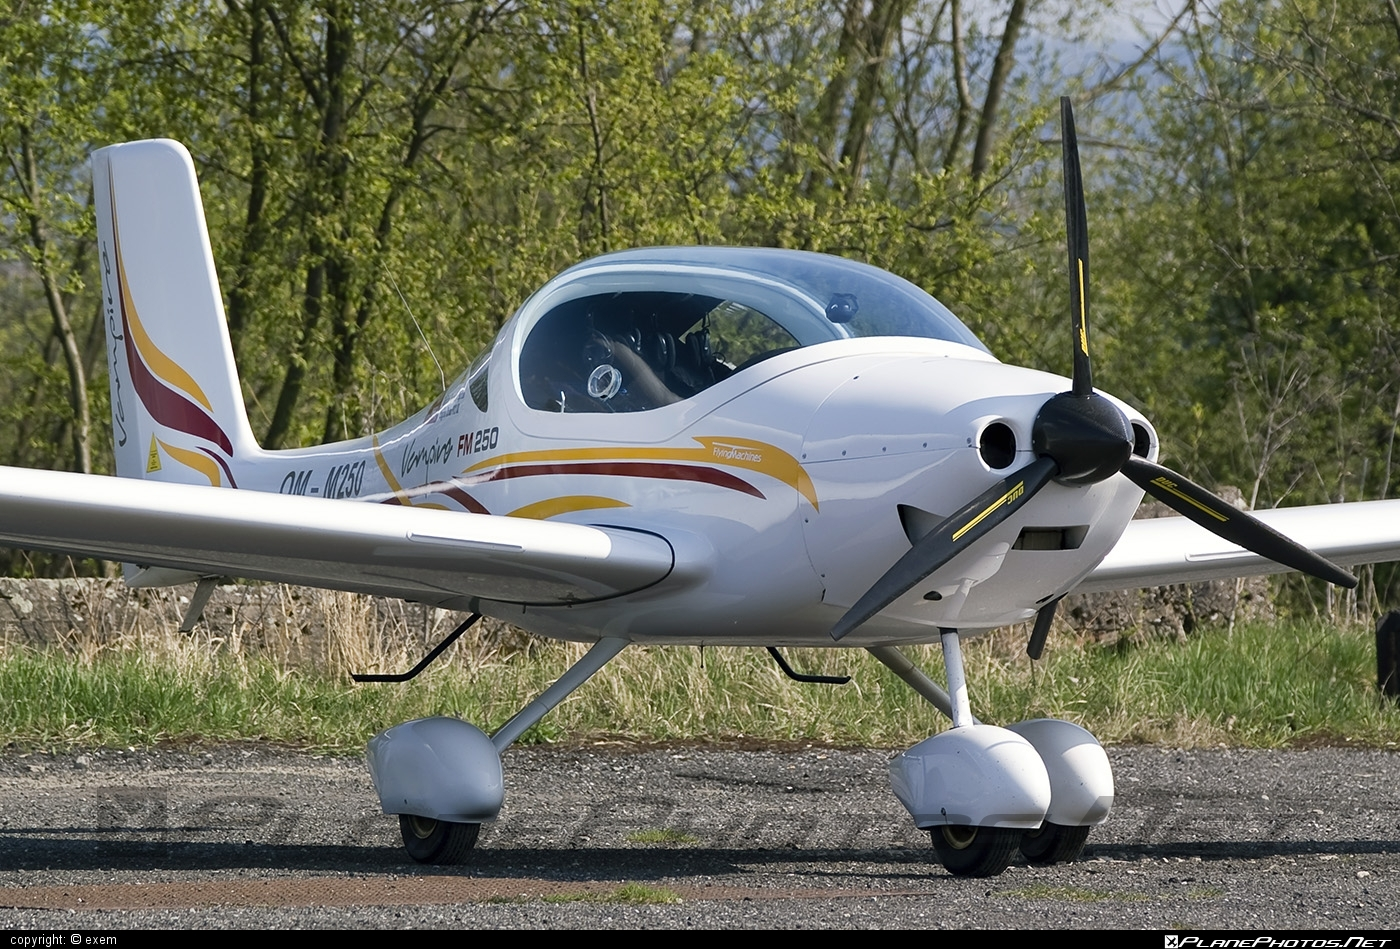 Flying Machines FM250 Vampire - OM-M250 operated by Private operator #flyingmachines